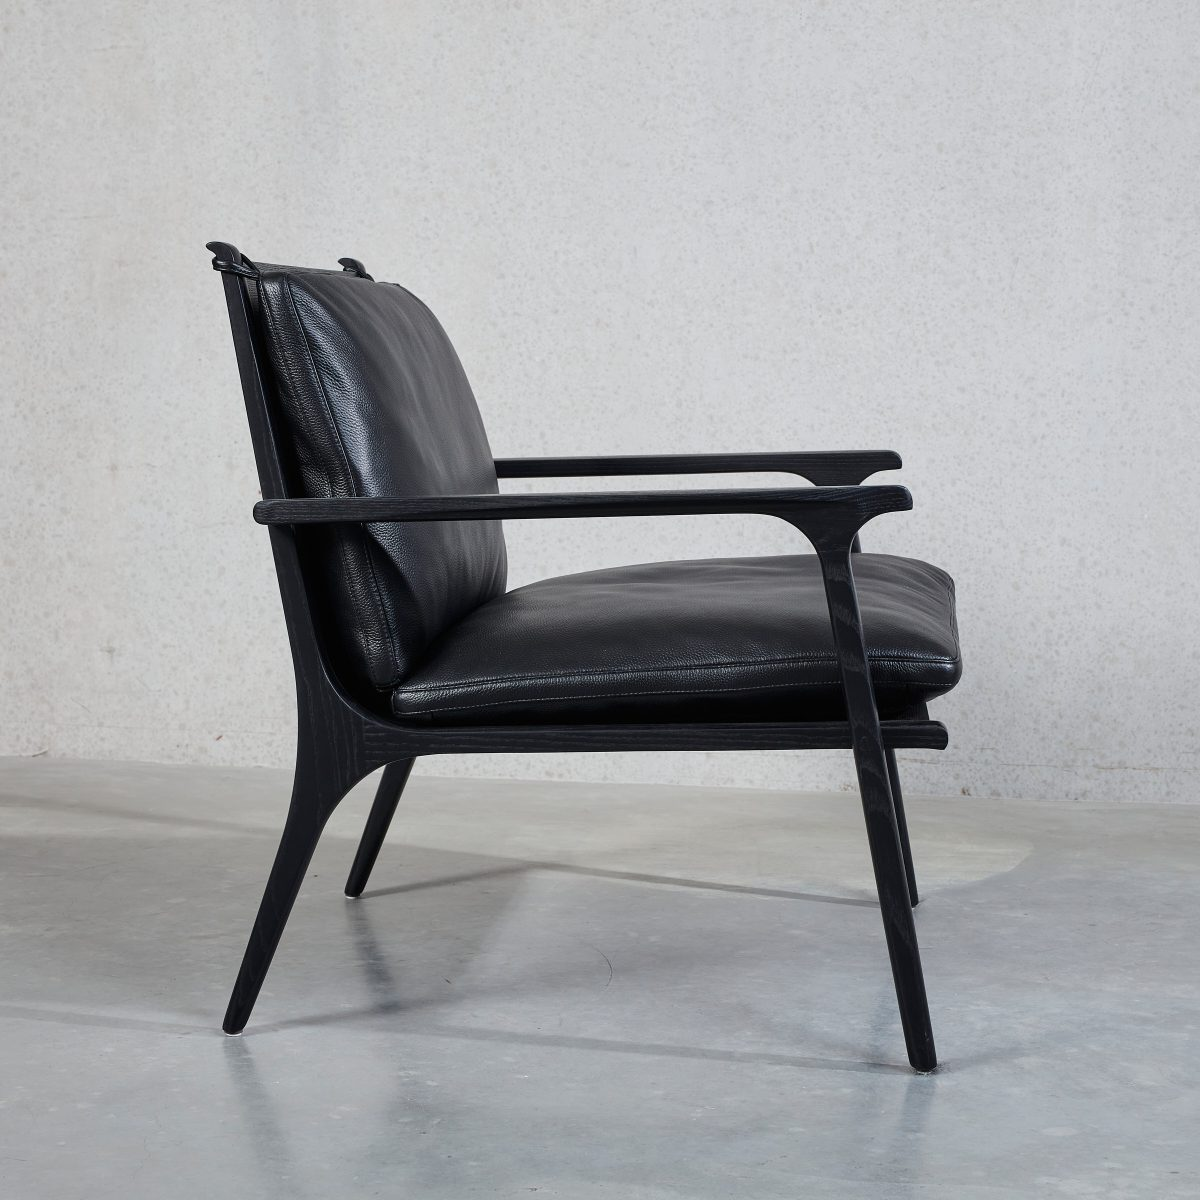 Rén Lounge Chair